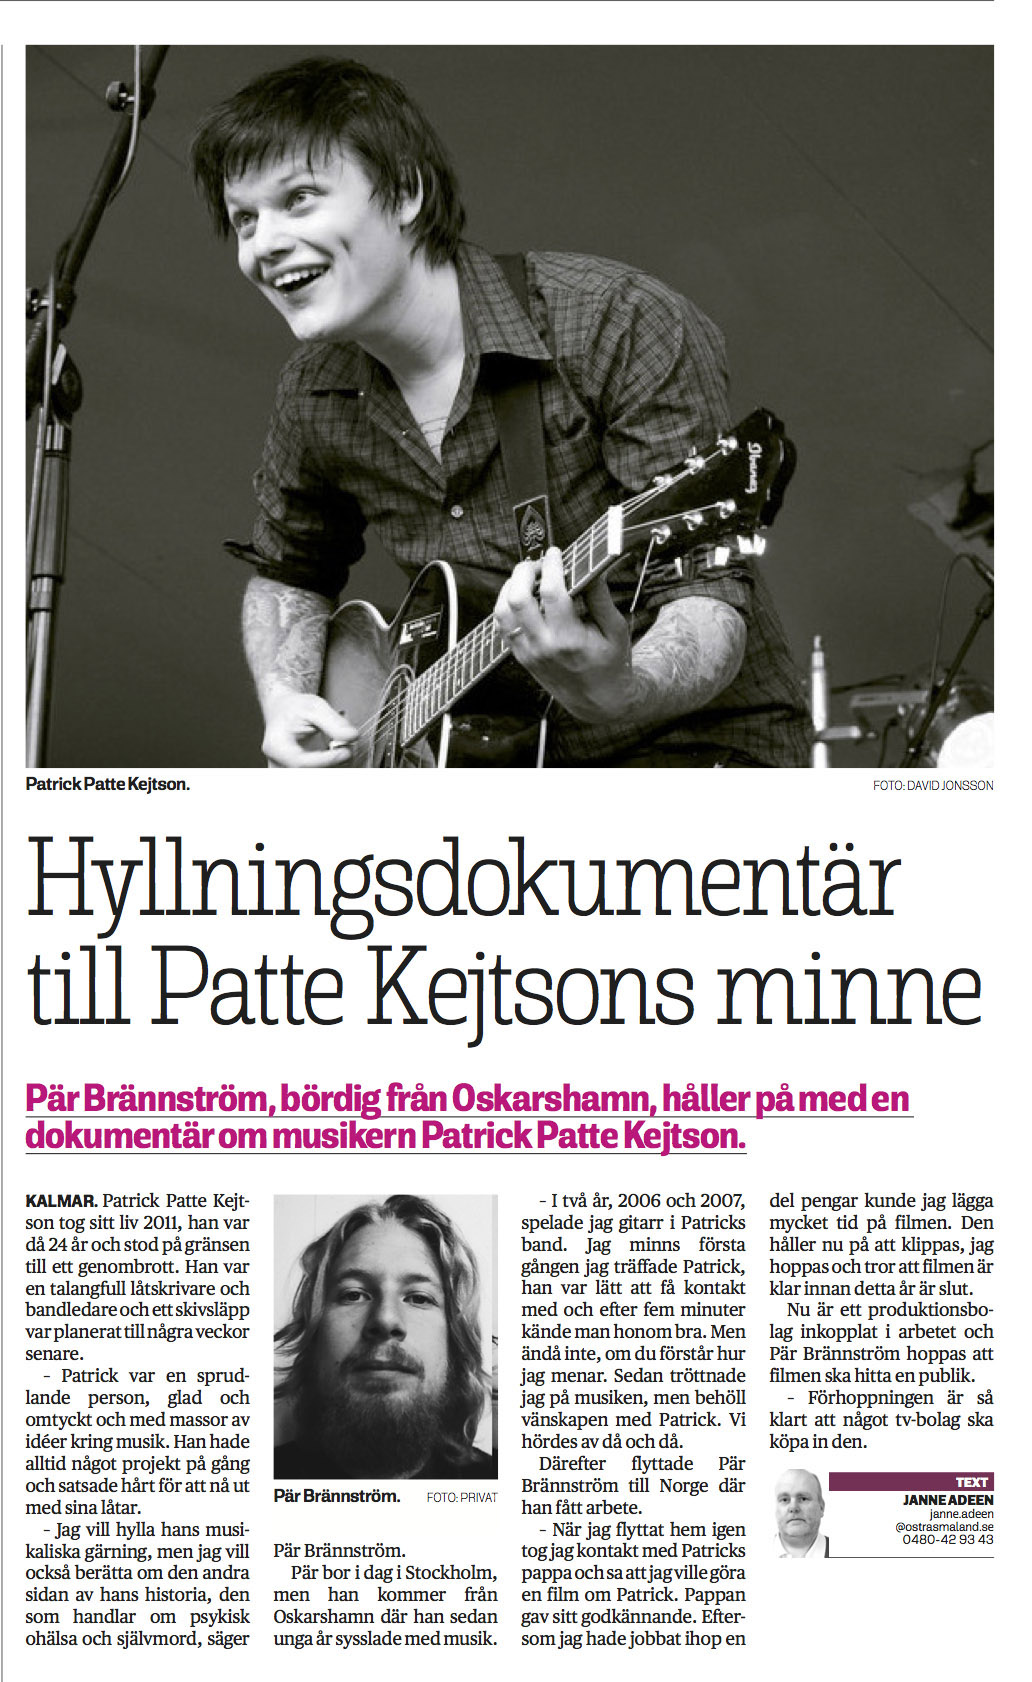 Article from Östran/Nyheterna written by Janne Adeen. Published on Monday, January 26:th.